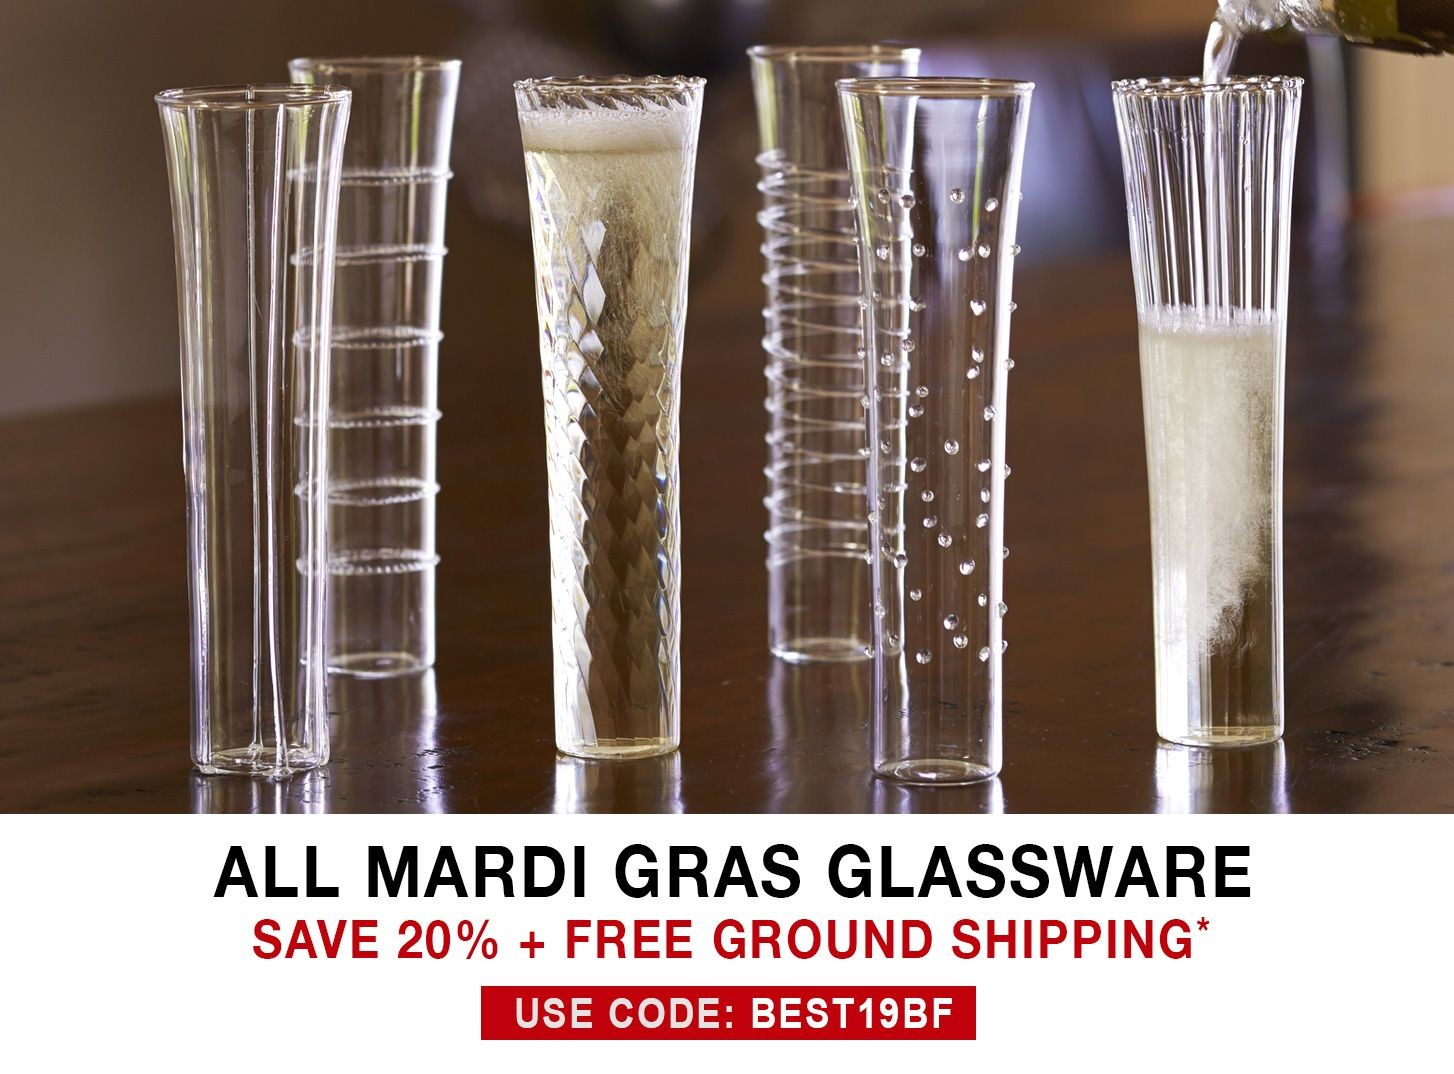 Mardi Gras Glasses - 20% Off + Free Ground Shipping - Use Code BEST19BF